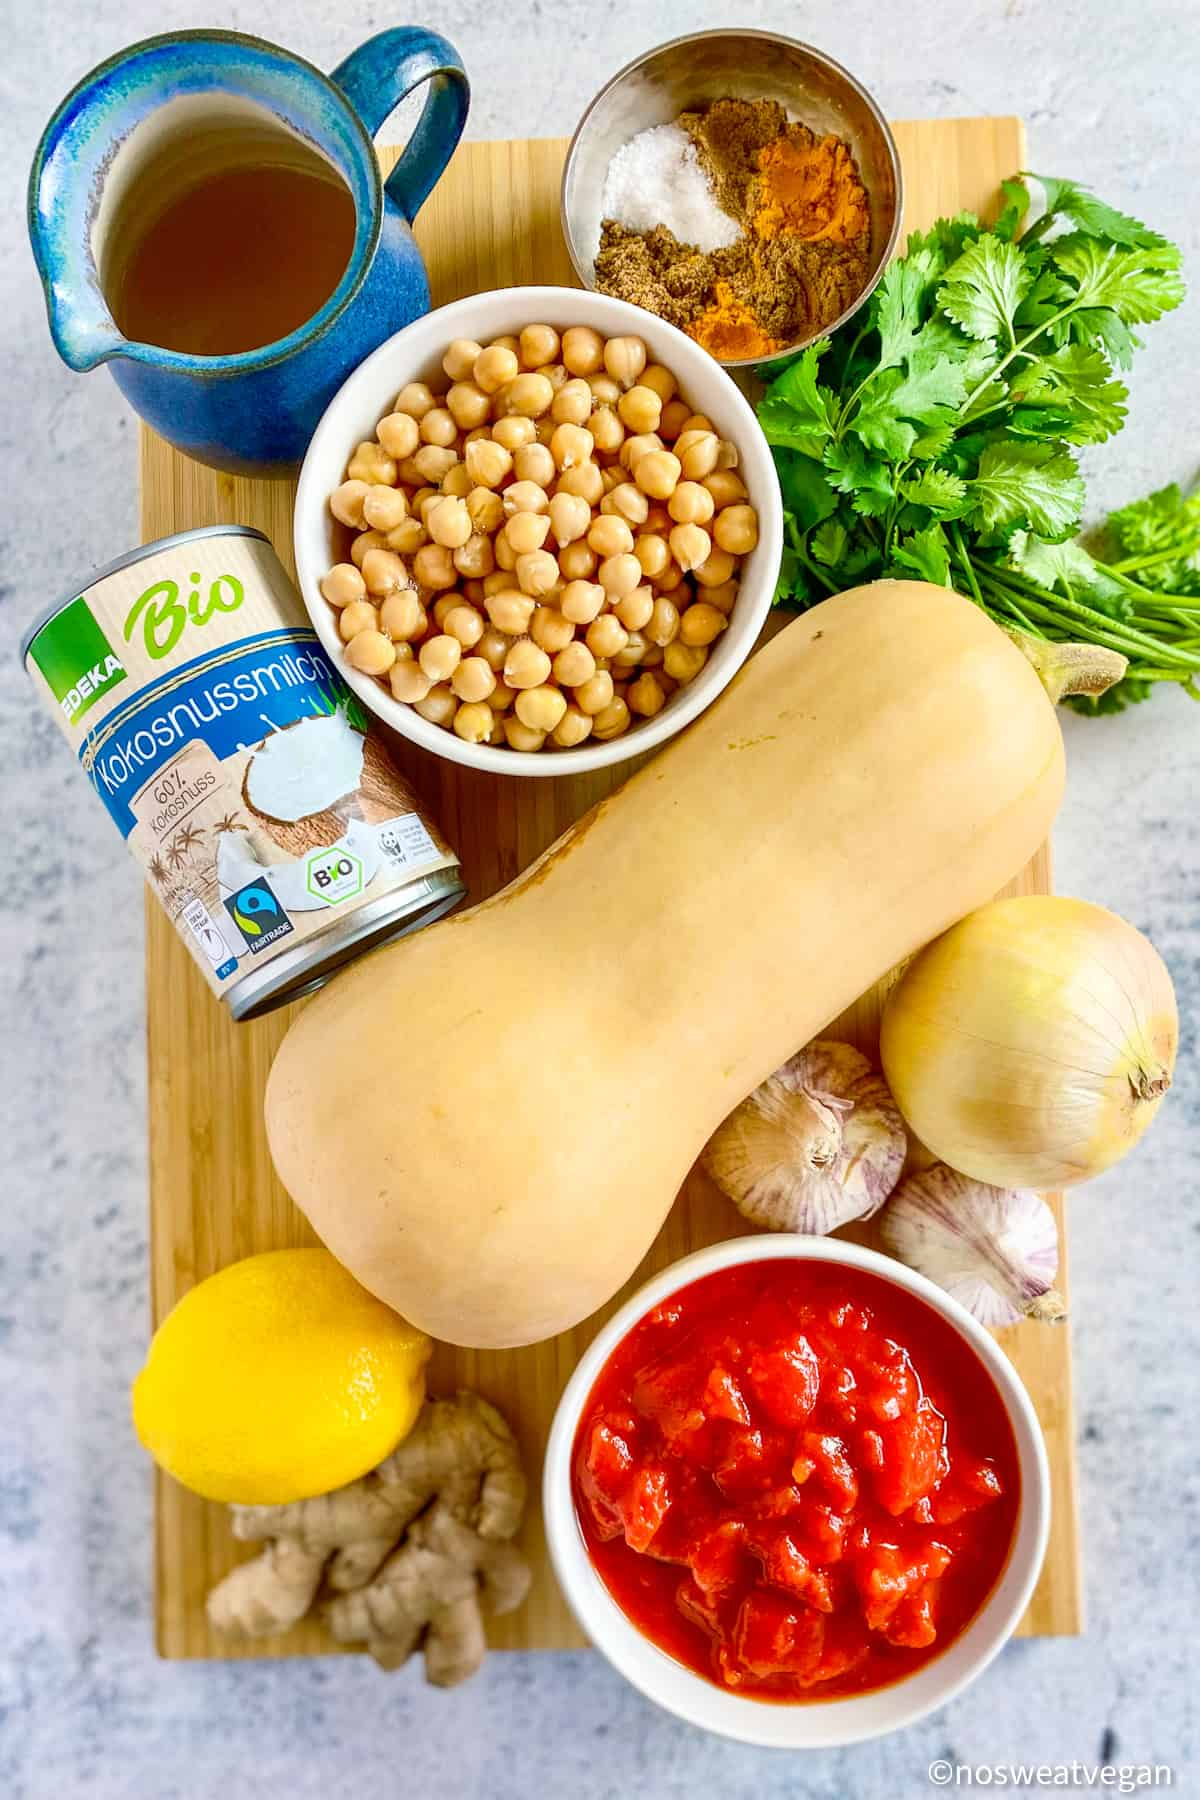 Butternut squash and chickpea curry ingredients.